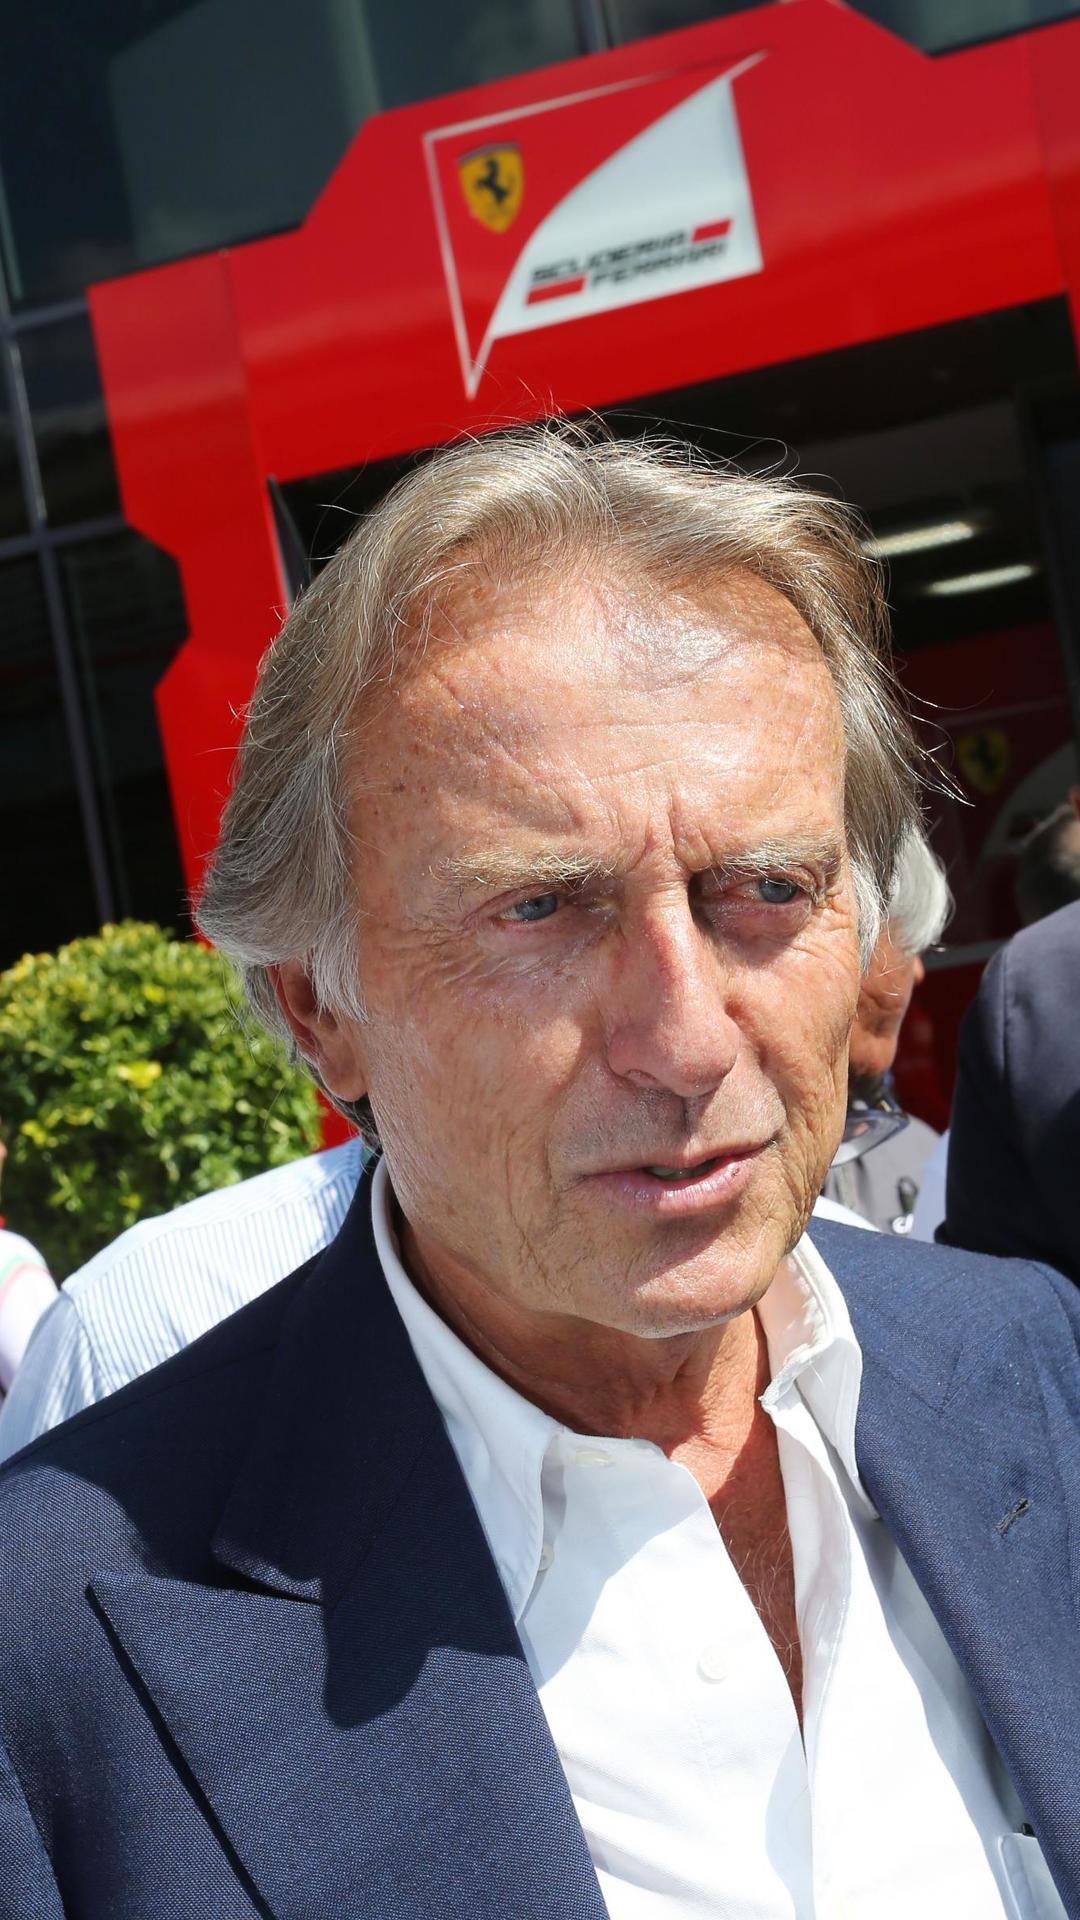 Montezemolo set for Alitalia top job